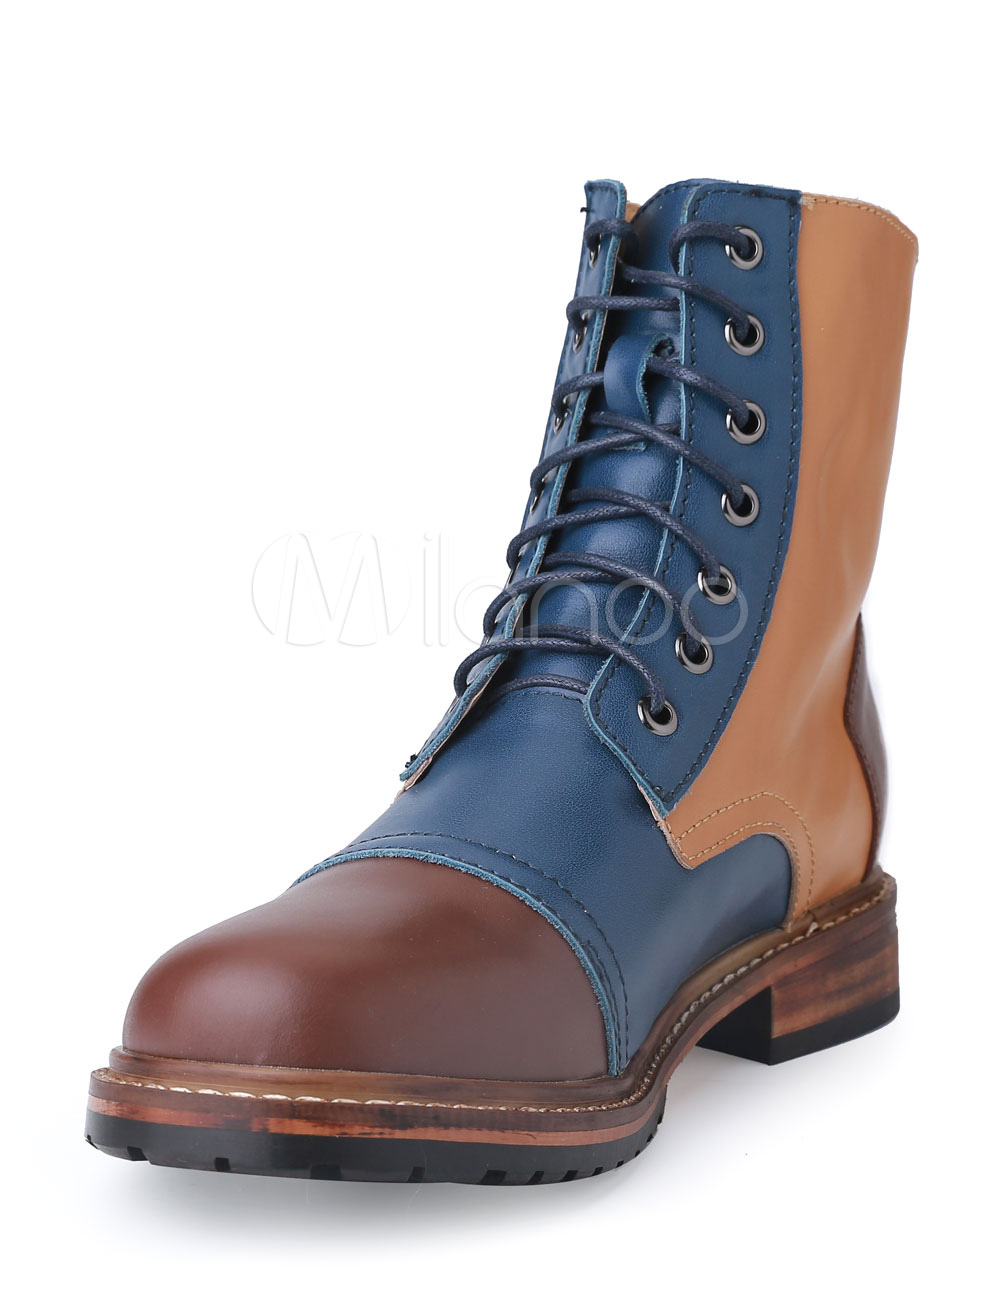 Men's Martin Shoes Lace Up Contrast Color Round Toe PU Leather Boots